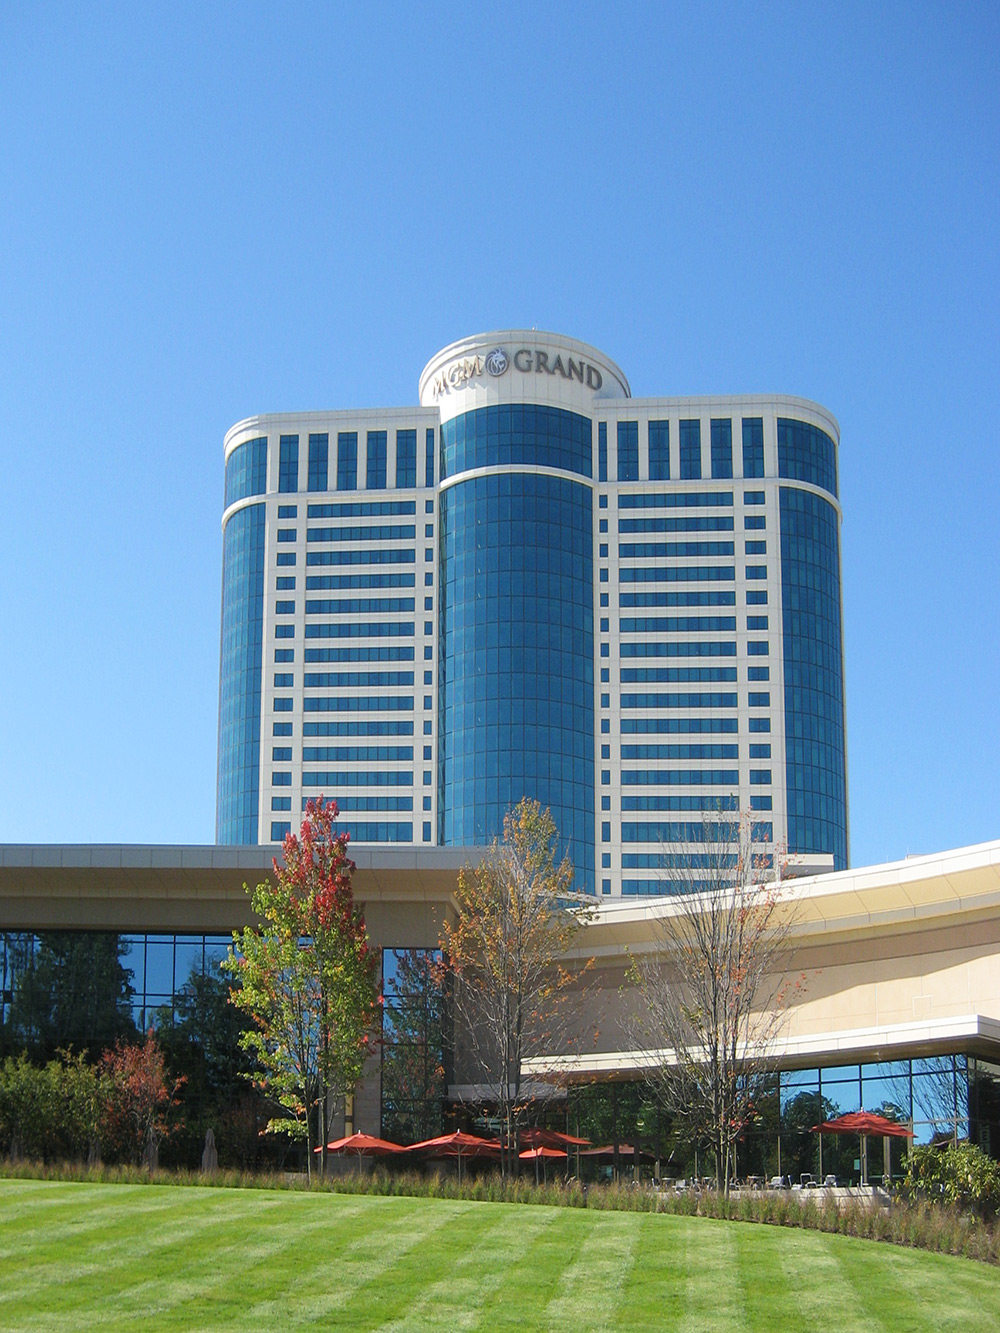 MGM Grand Hotel, Foxwoods